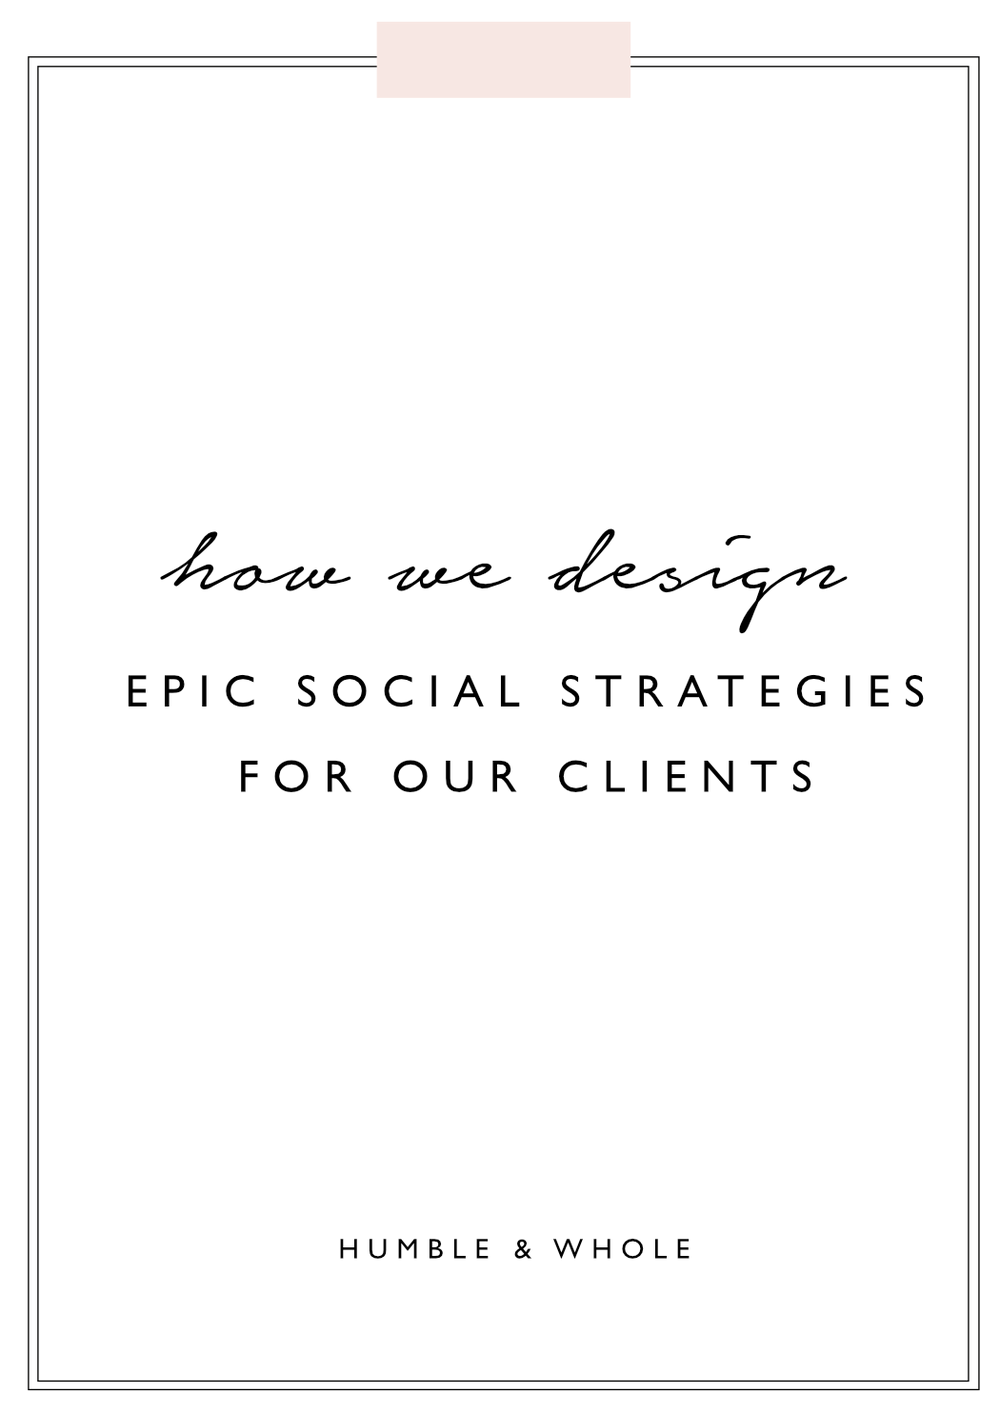 We're taking you behind the scenes to show you what goes into the social media strategies we create for our clients.  Each social media strategy we design is unique because it depends on several factors related to our clients and their businesses.  However, we've managed to streamline our process to result in an epic social media strategy for each client and we're excited to share a few details!